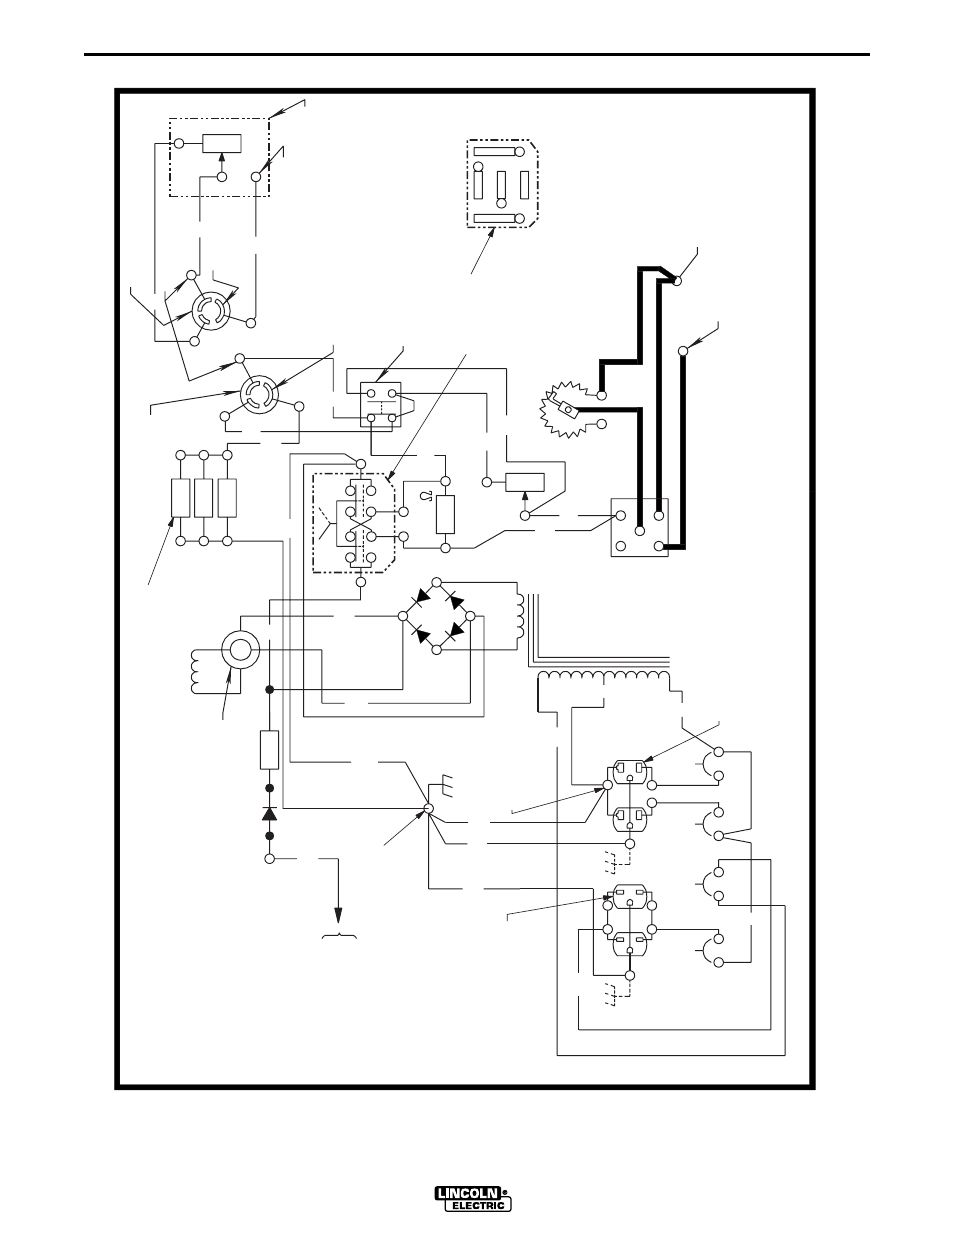 hight resolution of wiring diagrams sae400 weld n air control wiring diagram sae 400